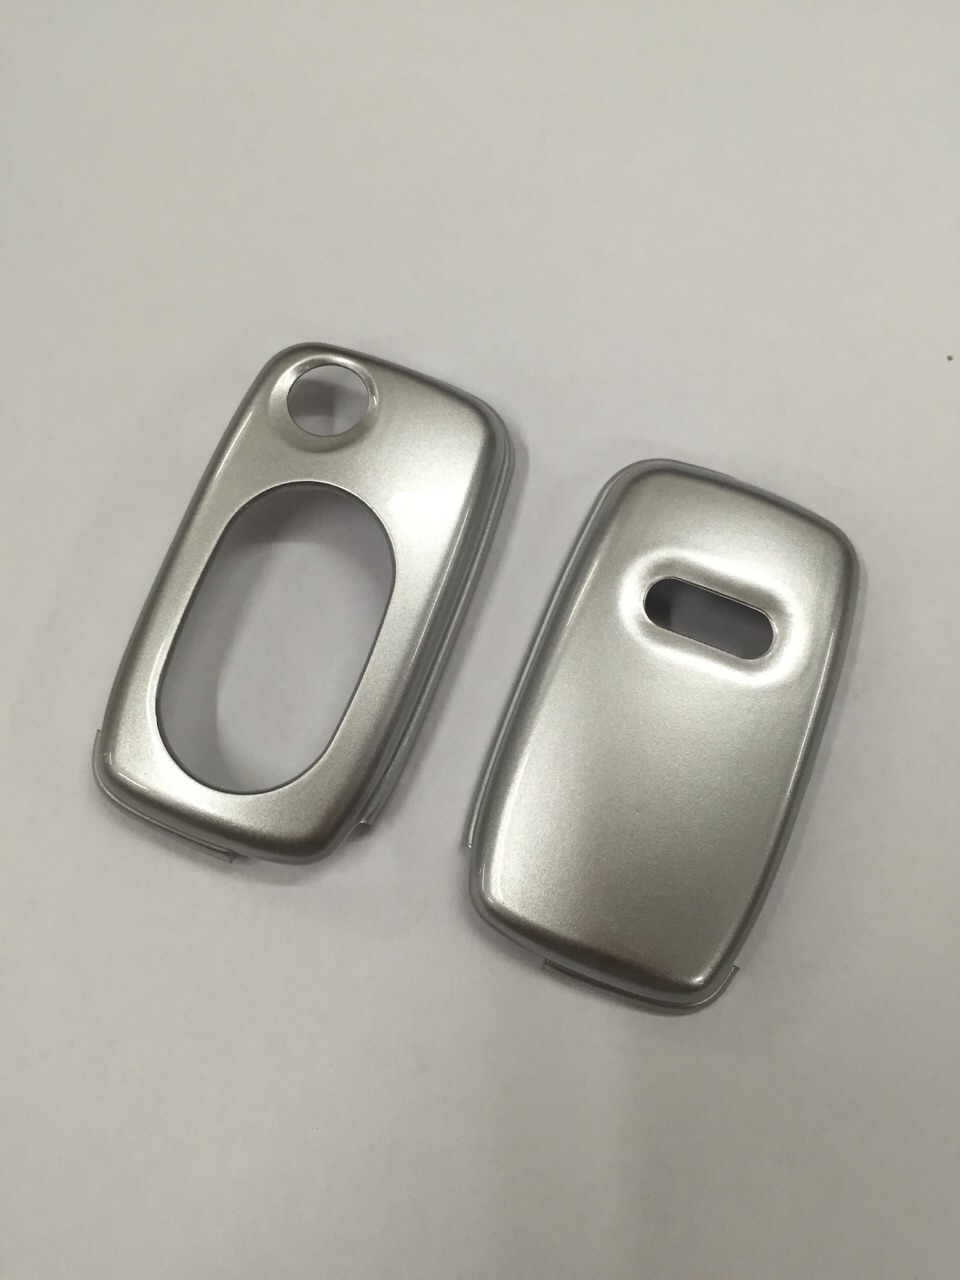 Gloss Silver Color Flip <font><b>Key</b></font> <font><b>Remote</b></font> <font><b>Key</b></font> Protection Case For <font><b>Audi</b></font> A3 8L A4 B5 B6 TT MK1 <font><b>A6</b></font> <font><b>C5</b></font> image